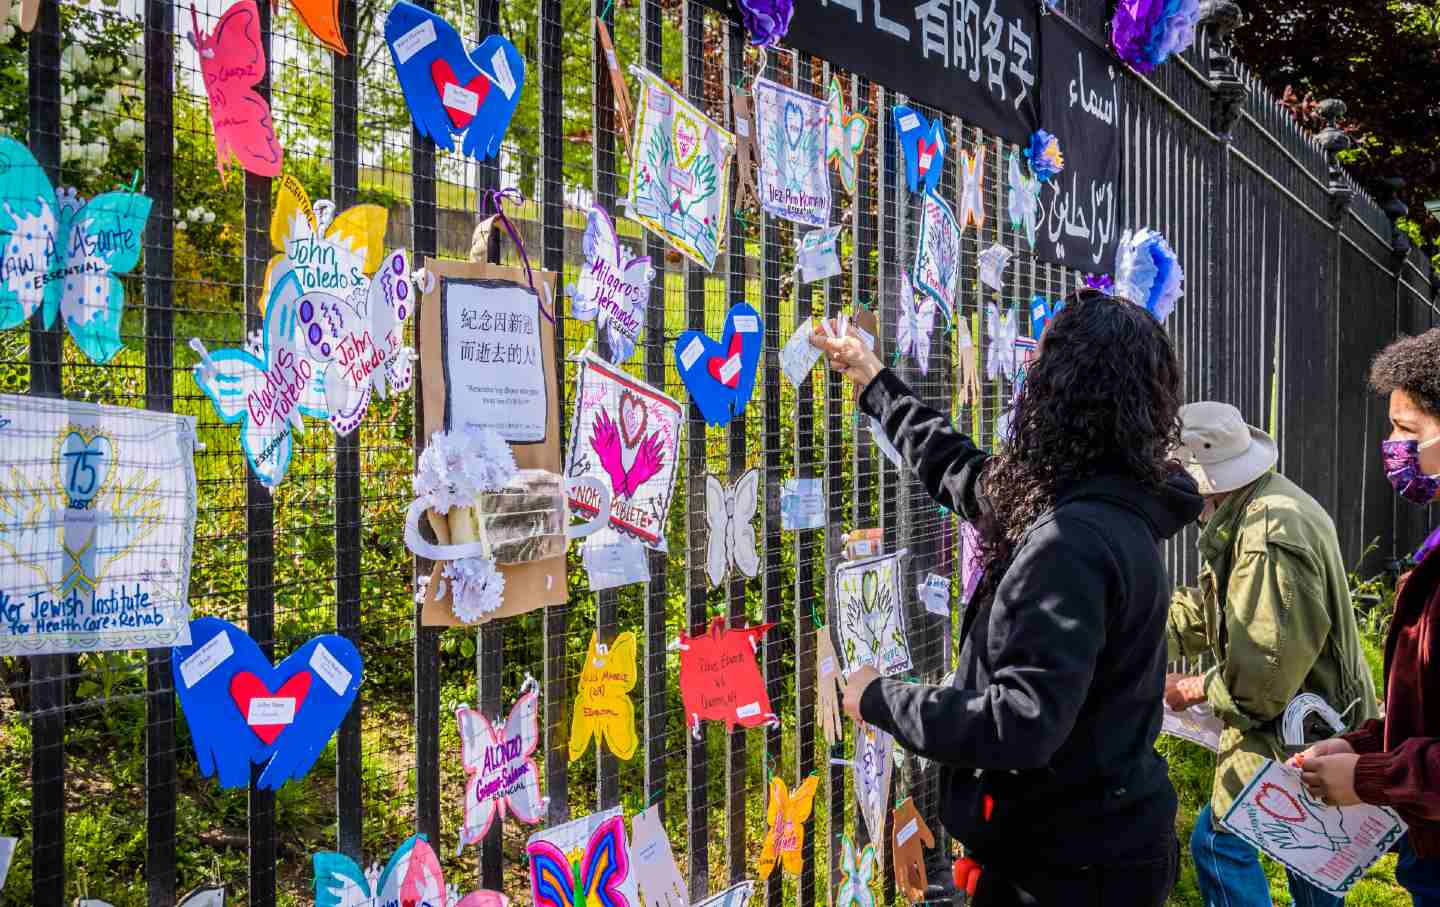 People hang signs on a fence commemorating those lost to Covid-19